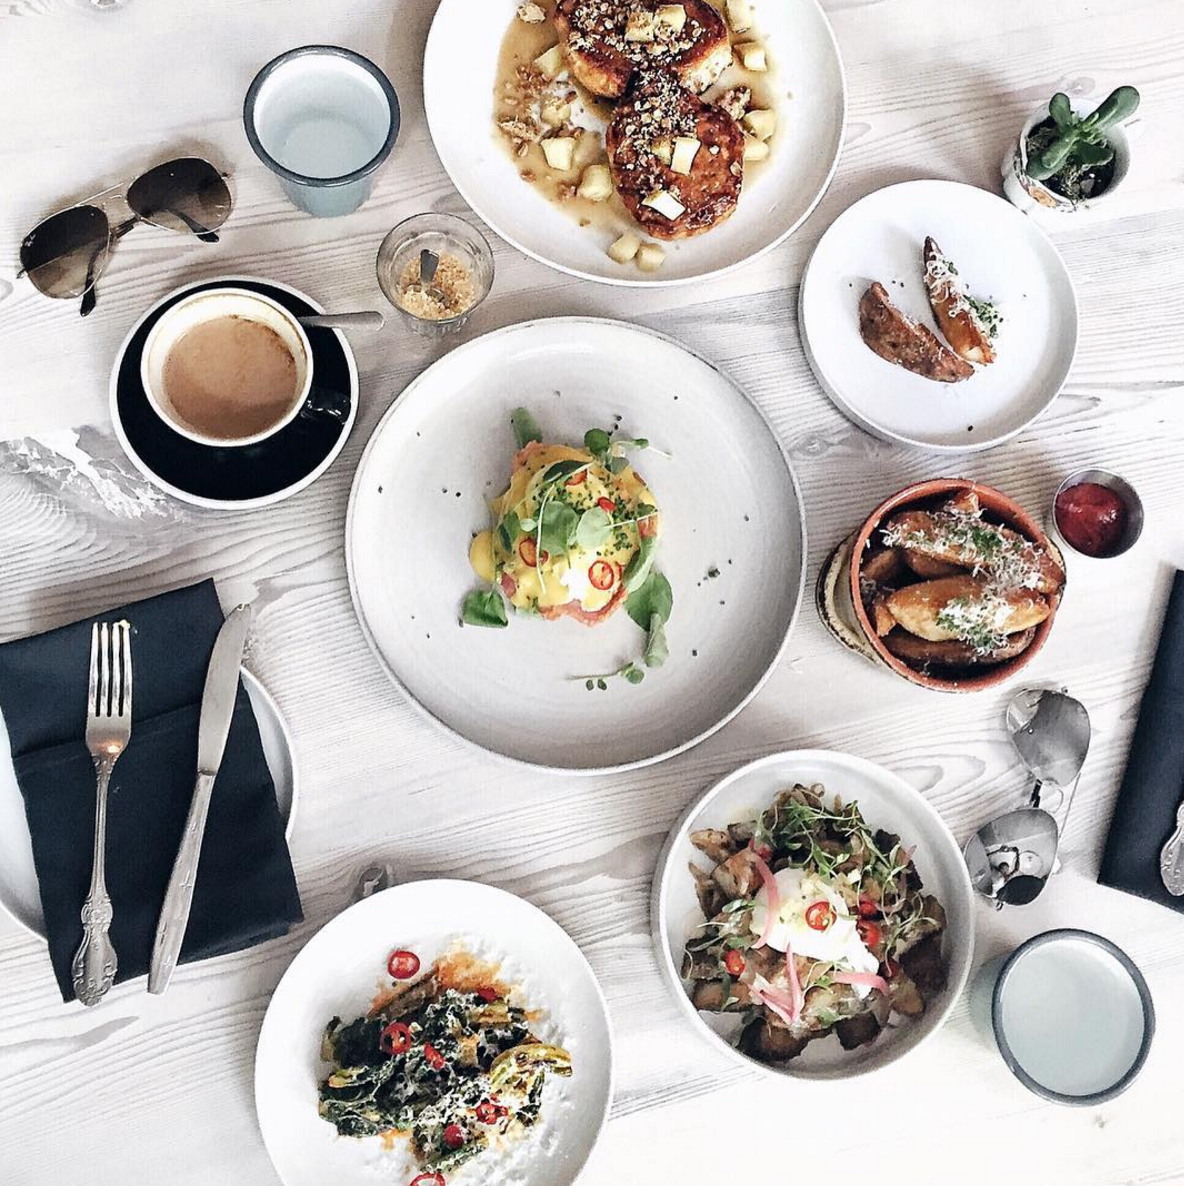 Tips for how to take better flat lay photos for Instagram